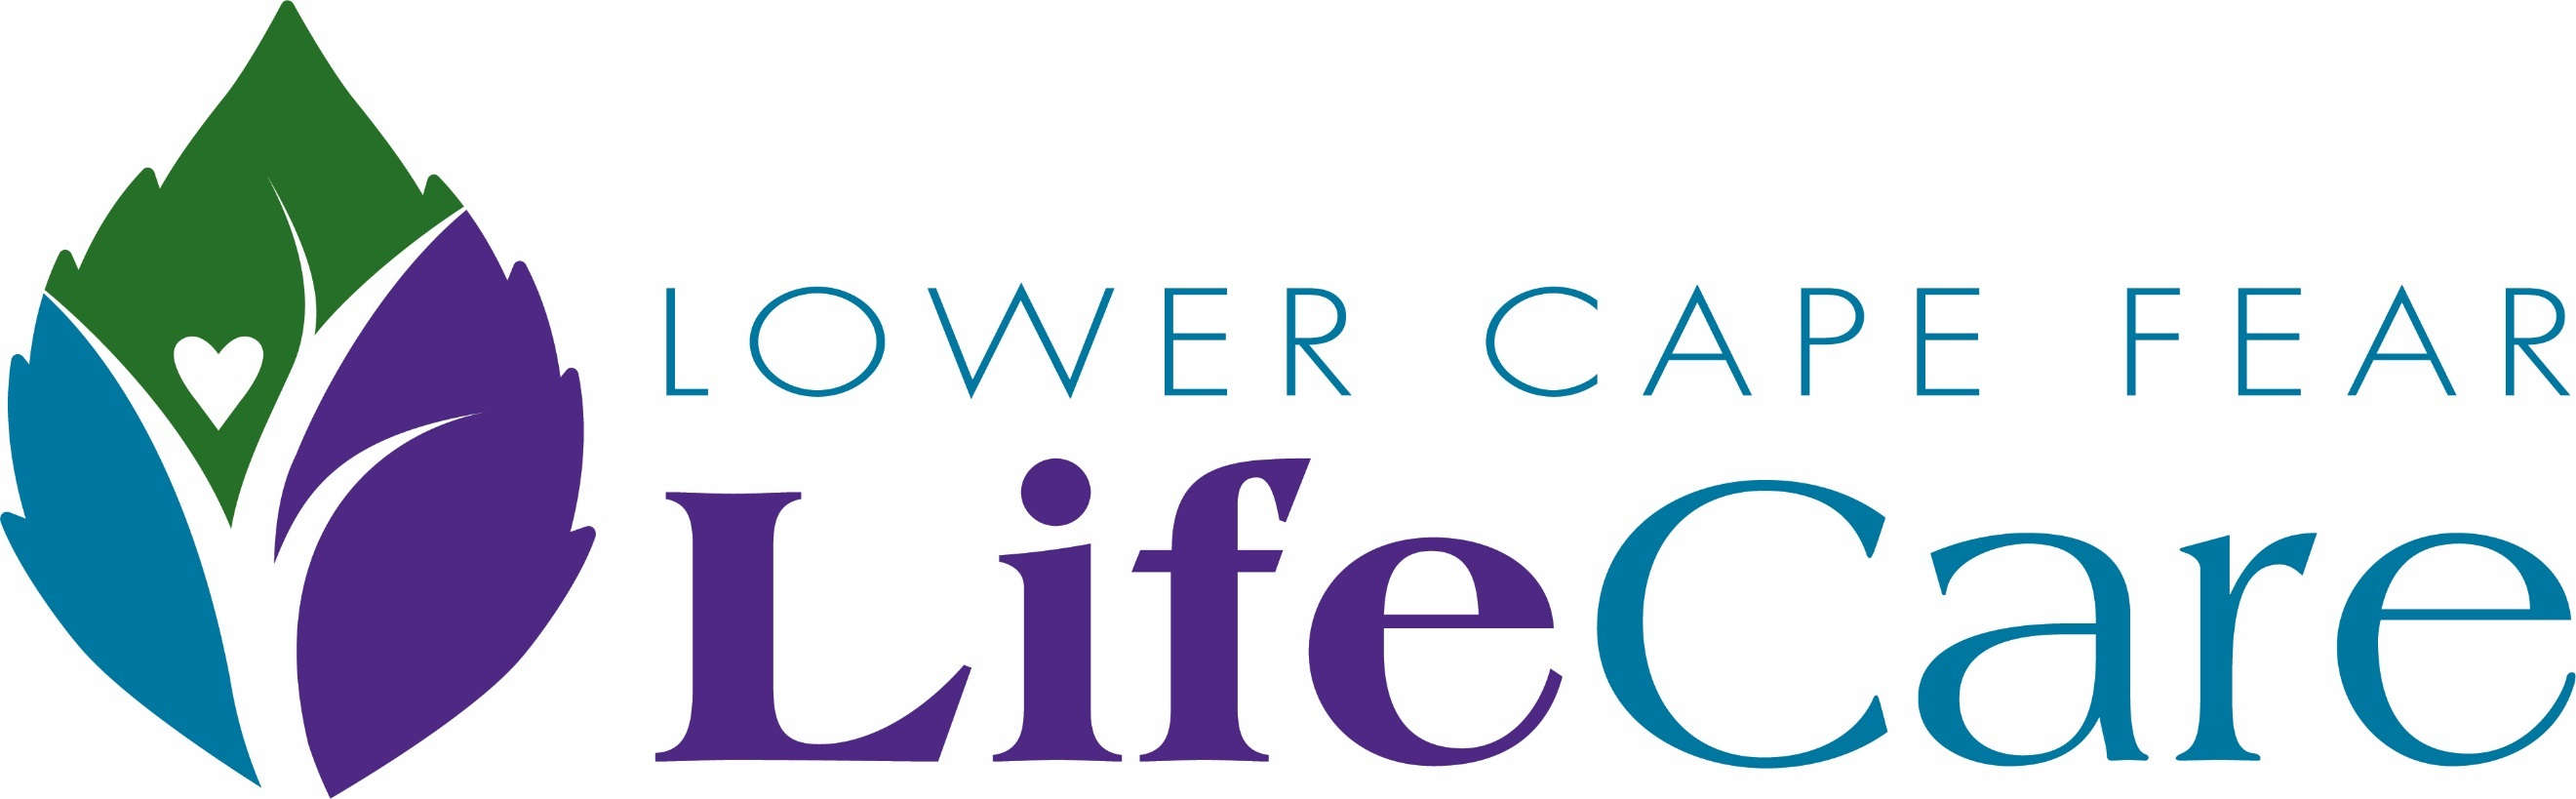 Lower Cape Fear LifeCare Receives Grant from North Carolina Community Foundation